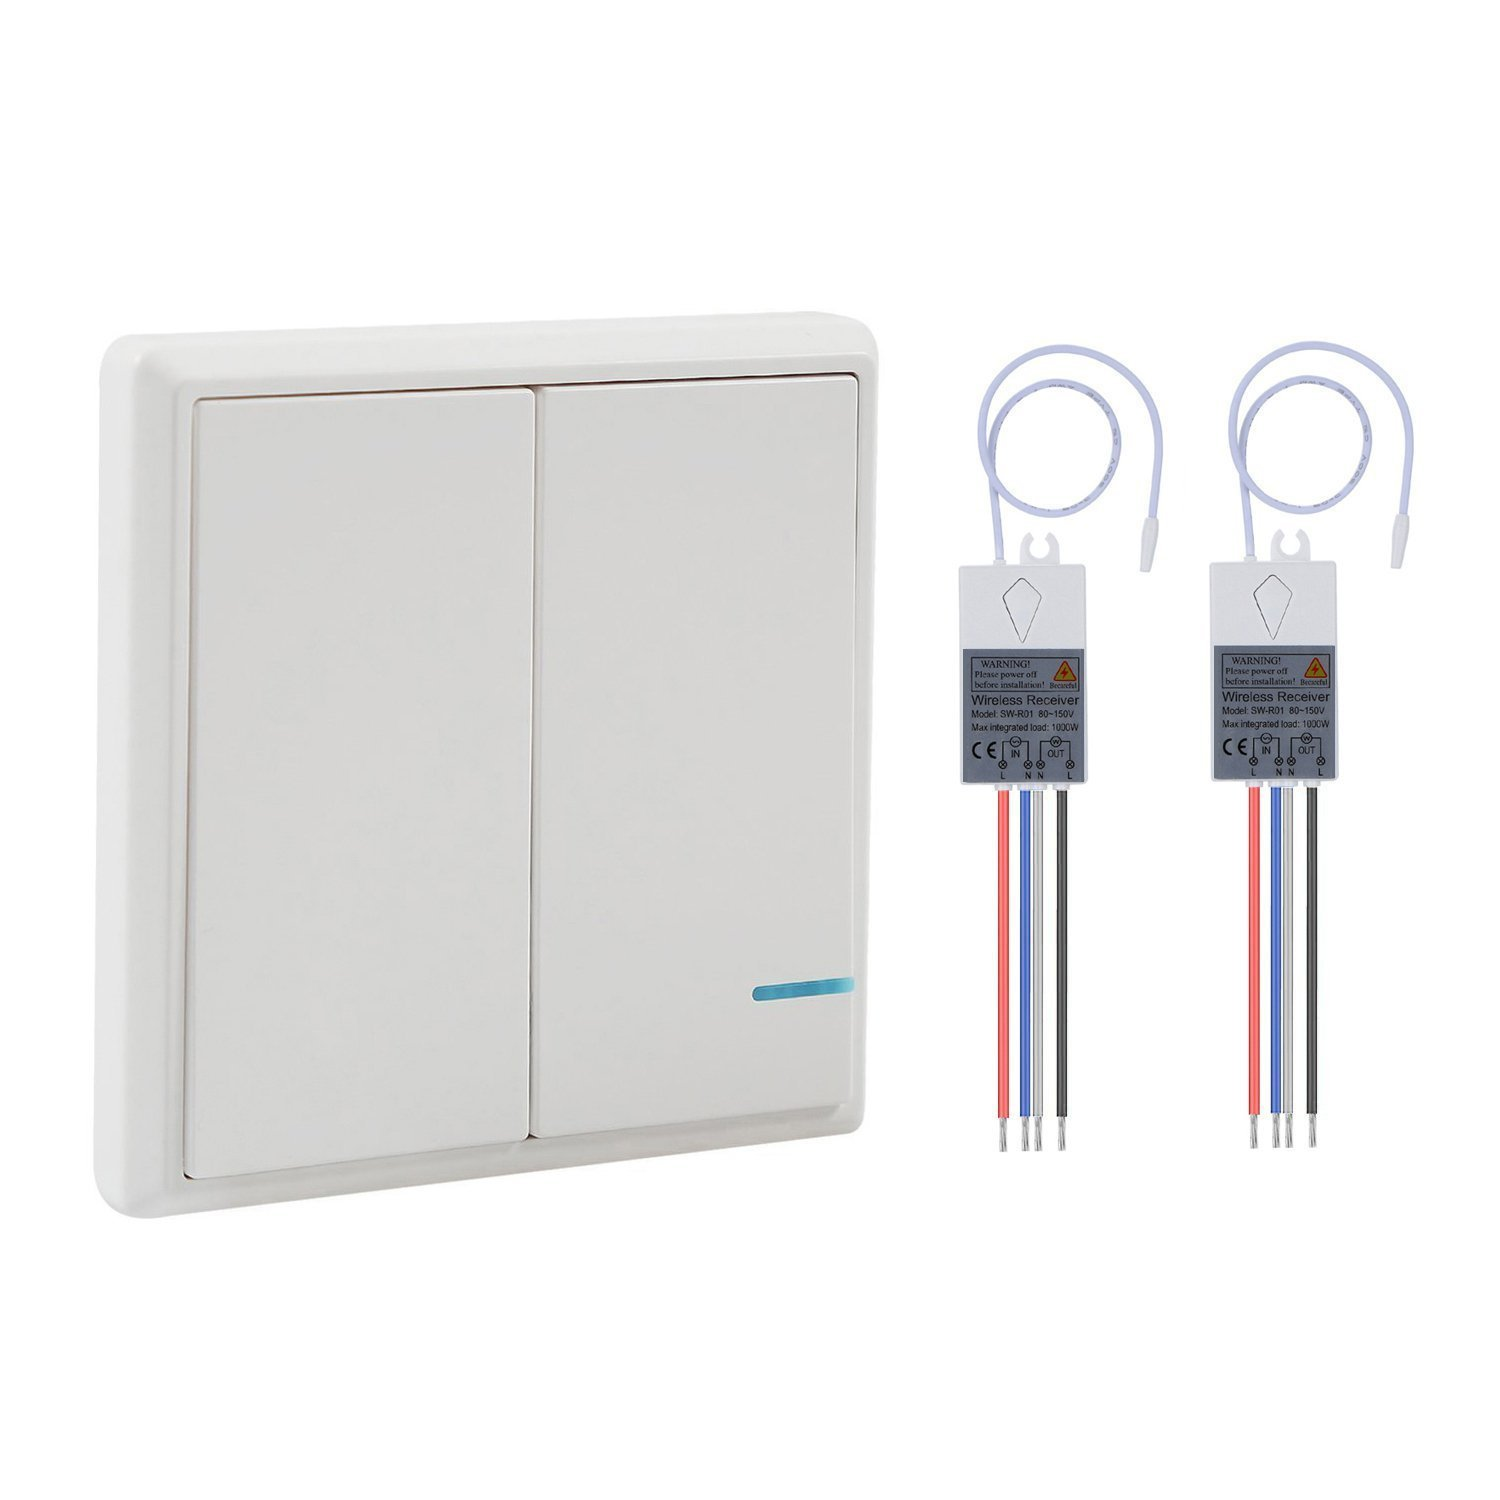 Wsdcam Wireless Light Switch And Receiver Kit Outdoor 1900 Ft Electrical Wiring In The Home Installing A New Ceiling Indoors 229 Remote Control